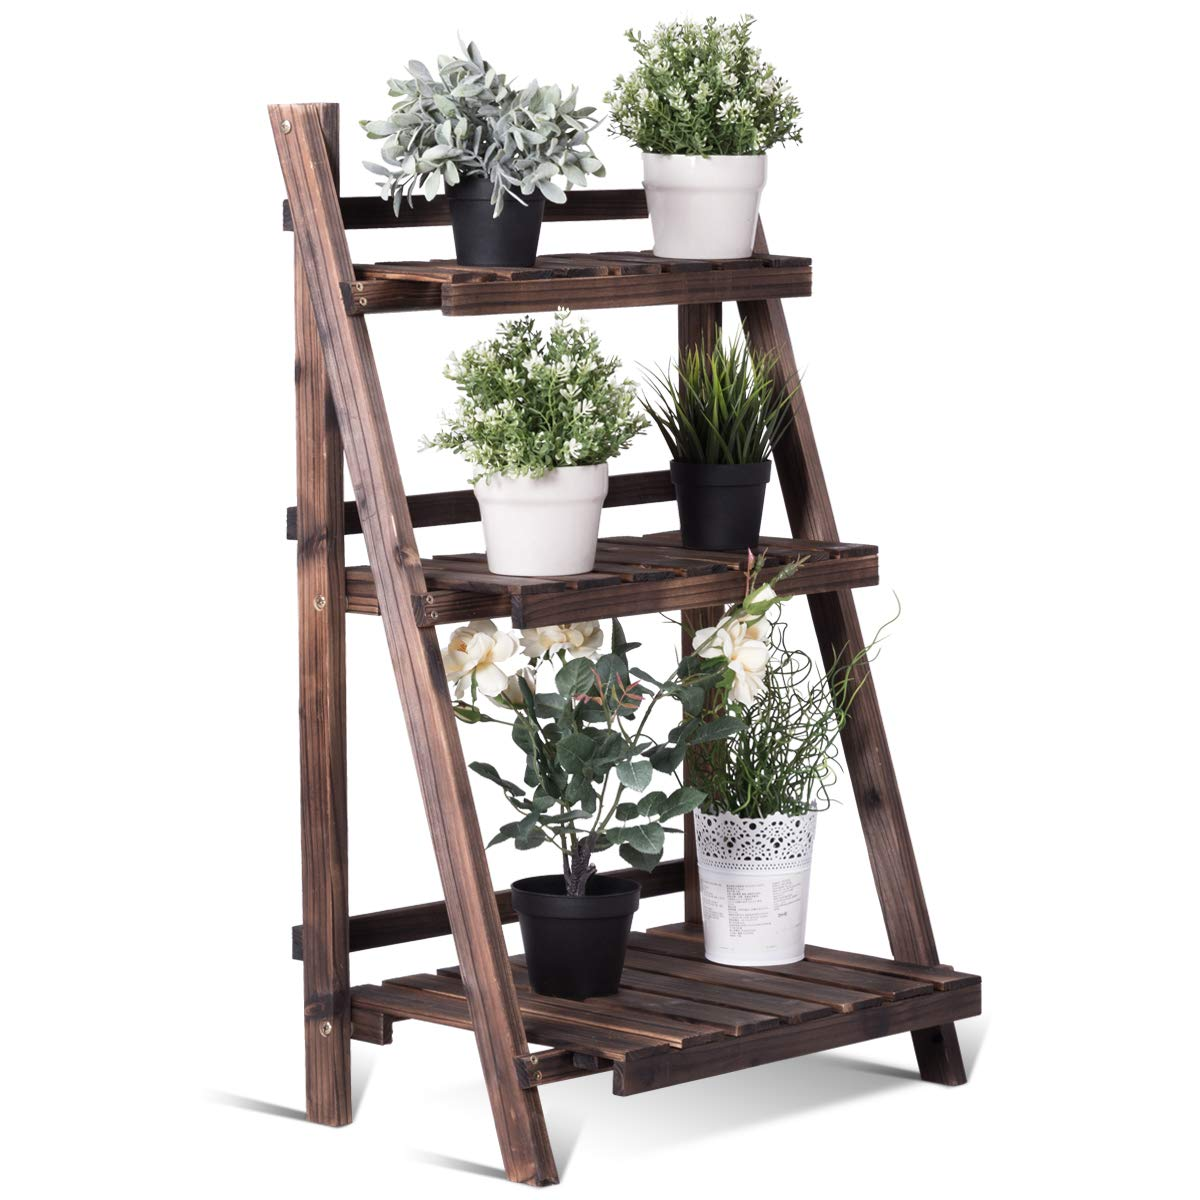 Giantex 3 Tier Folding Wooden Plant Stand with Pot Shelf Stand Display Rack for Indoor Outdoor Garden Greenhouse, 24'' x 15'' x 37''